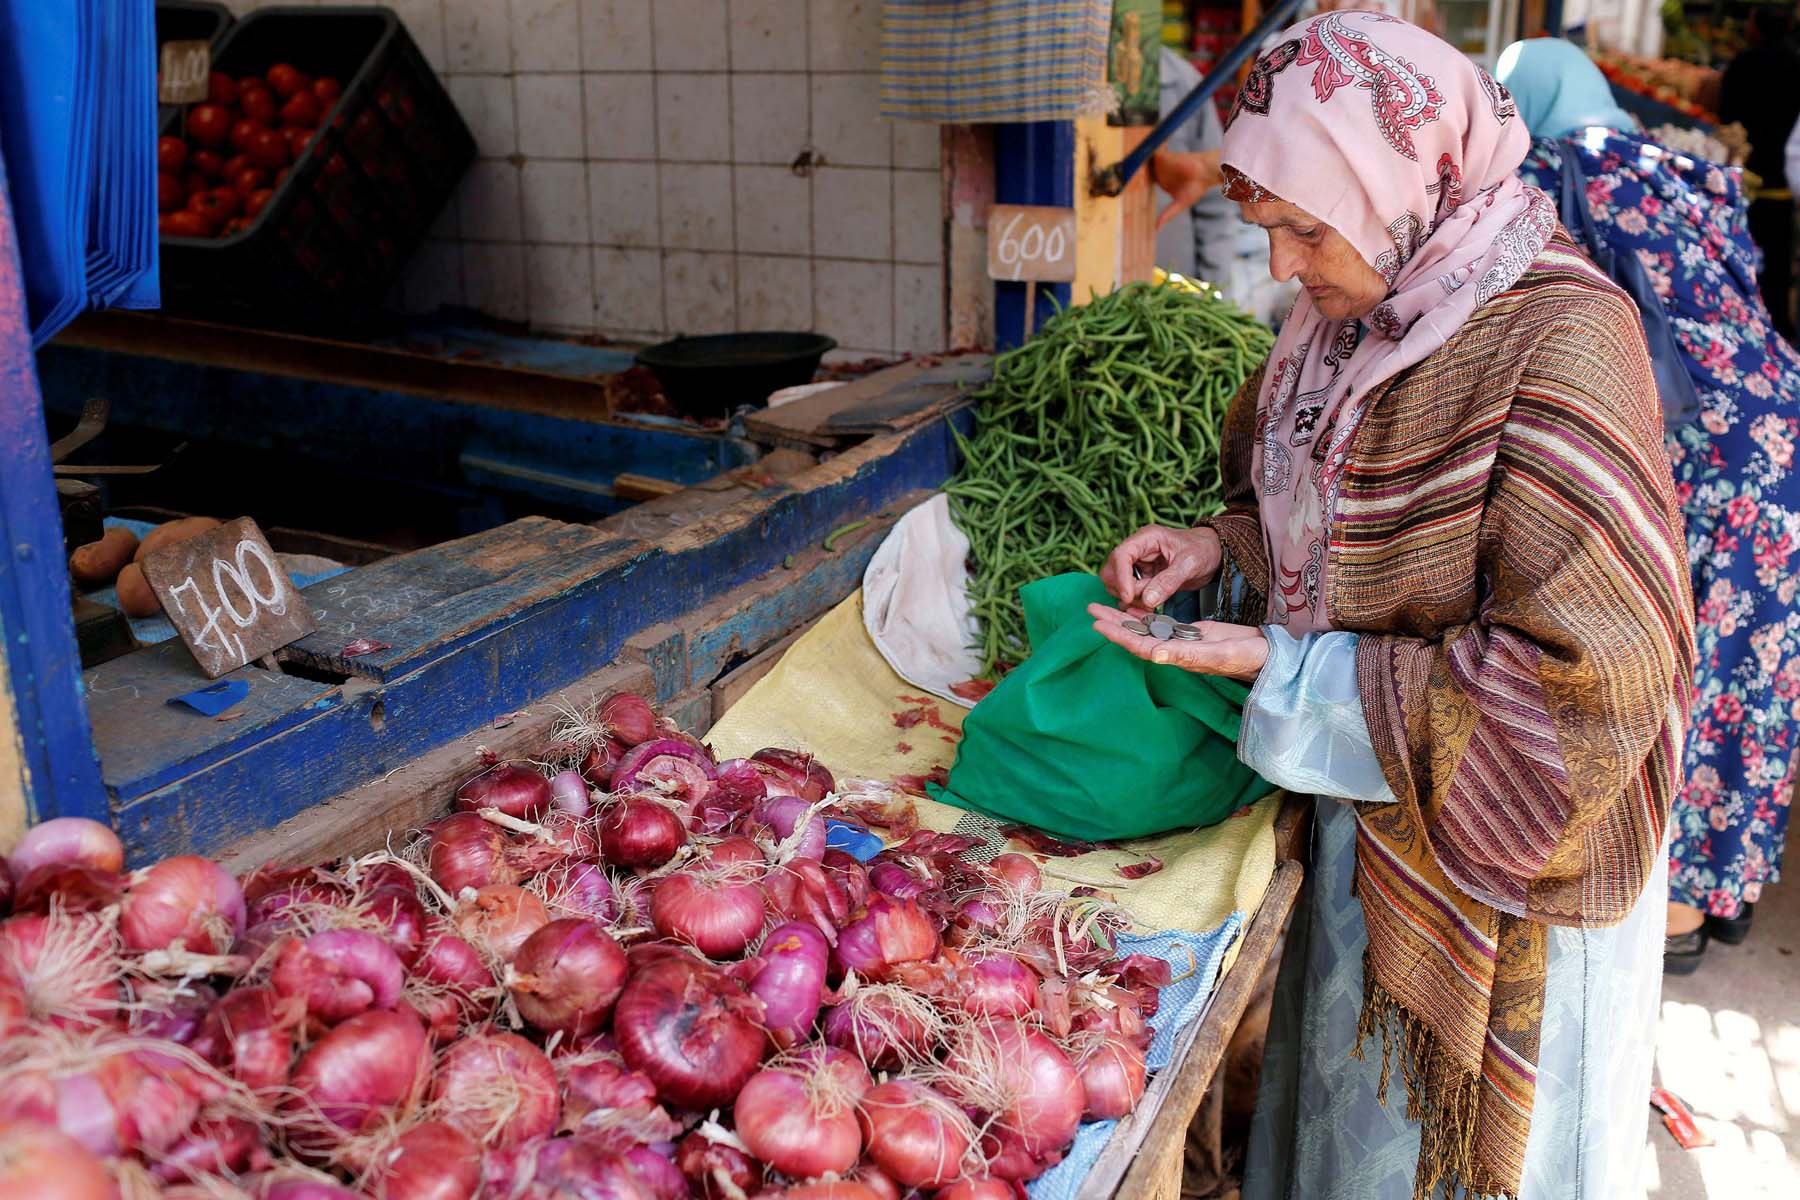 A Moroccan woman counts change at a vegetable market in Casablanca.          (Reuters)